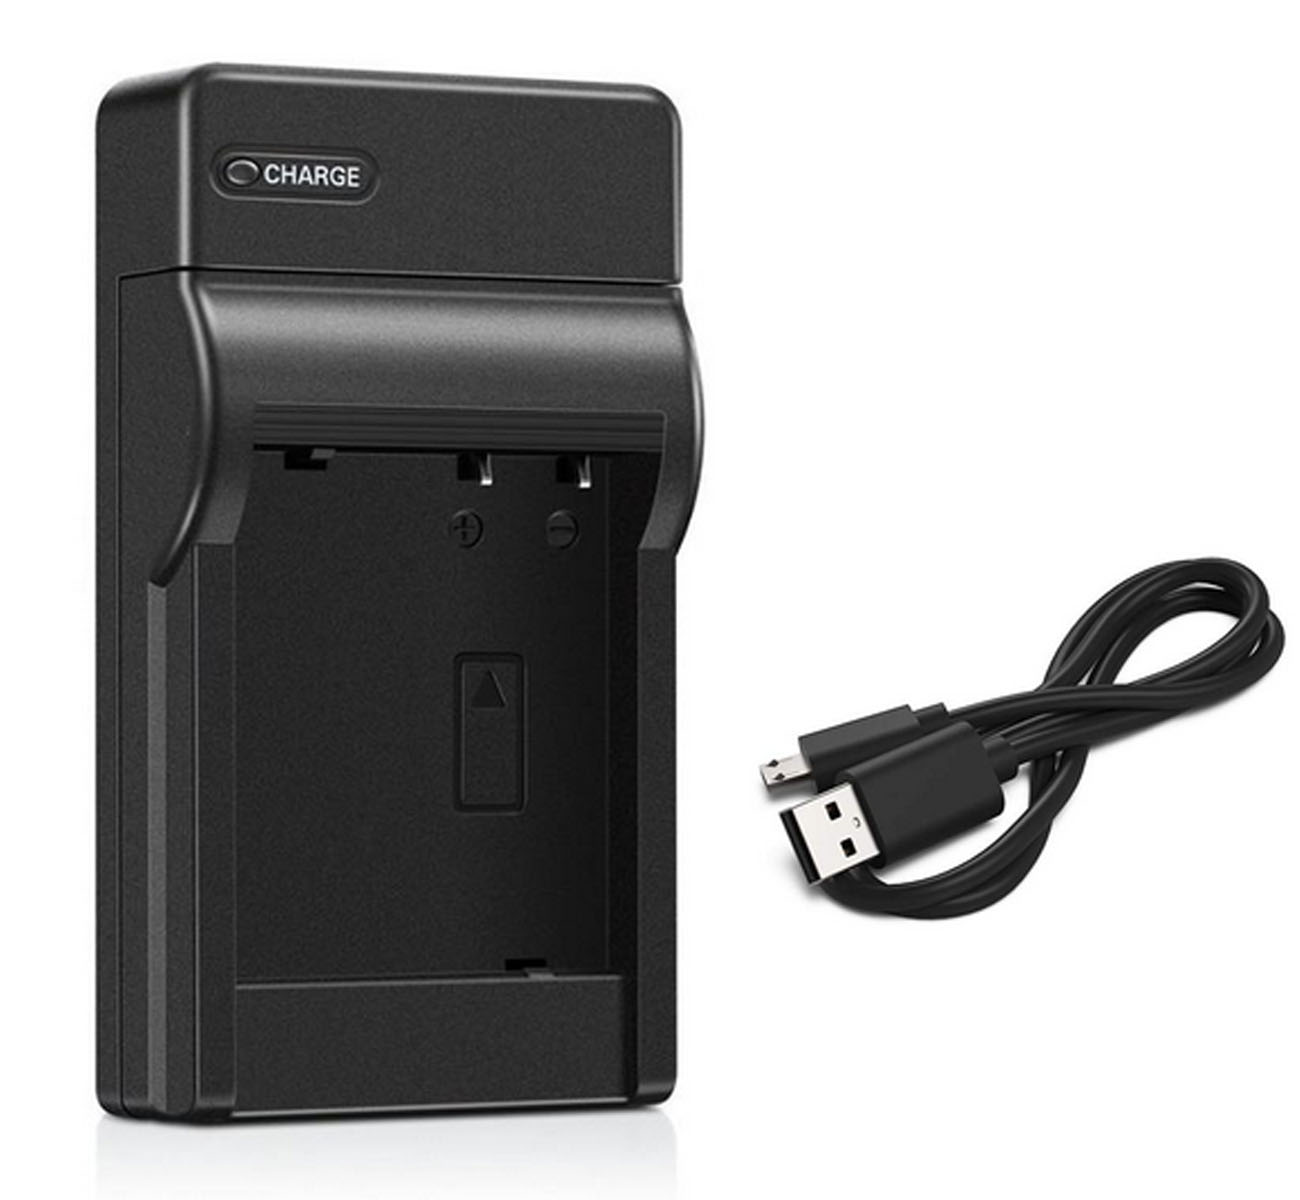 Battery Charger for <font><b>Sony</b></font> <font><b>Alpha</b></font> ILCE-3000, ILCE-3500, ILCE-<font><b>5000</b></font>,ILCE-5100,ILCE-6000,ILCE-6300,ILCE-6500 Mirrorless Digital Camera image